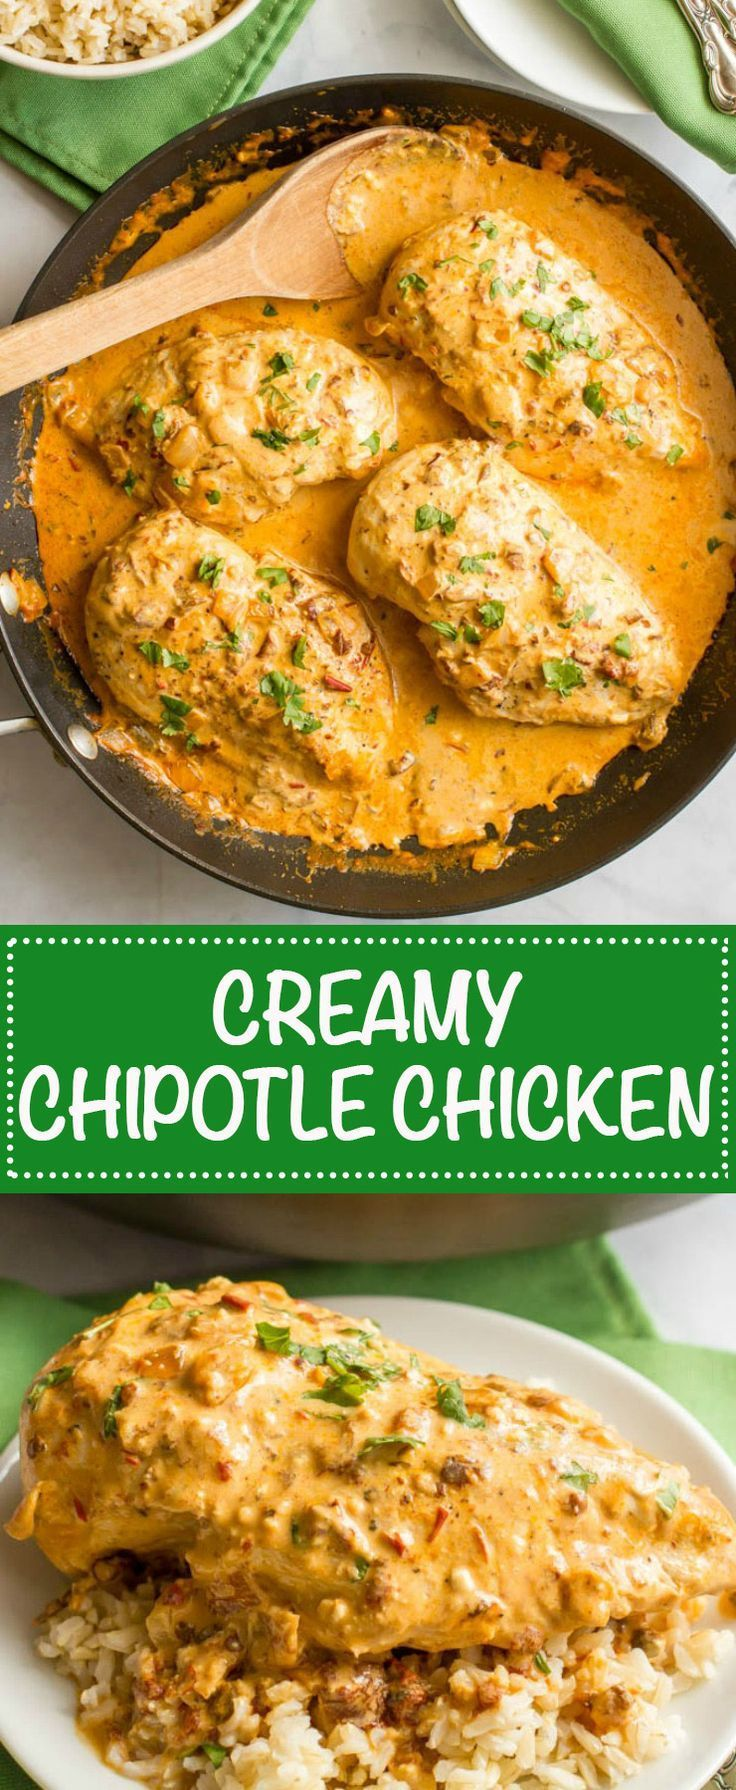 Creamy chipotle chicken is a simple but super flavorful 30-minute dinner with a delicious smoky chipotle cream sauce - that's healthy!